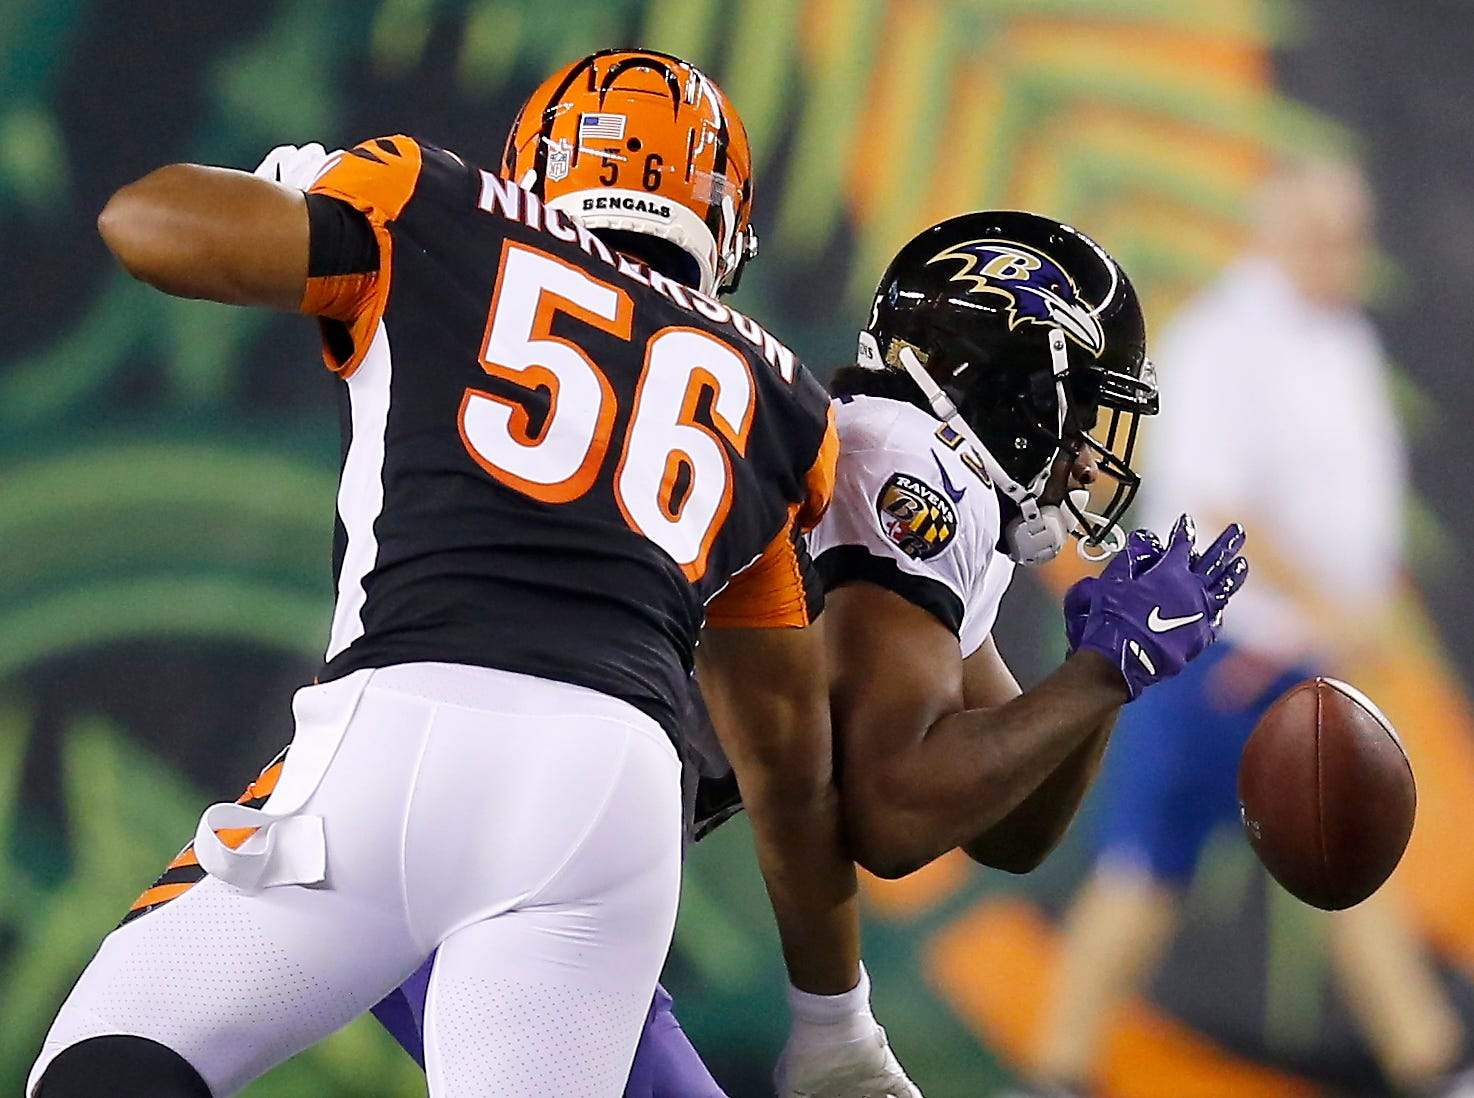 Cincinnati Bengals linebacker Hardy Nickerson (56) knocks the ball loose from Baltimore Ravens wide receiver Michael Crabtree (15) on the opening kick off of the first quarter of the NFL Week 2 game between the Cincinnati Bengals and the Baltimore Ravens at Paul Brown Stadium in downtown Cincinnati on Thursday, Sept. 13, 2018. The Bengals led 28-14 at halftime.